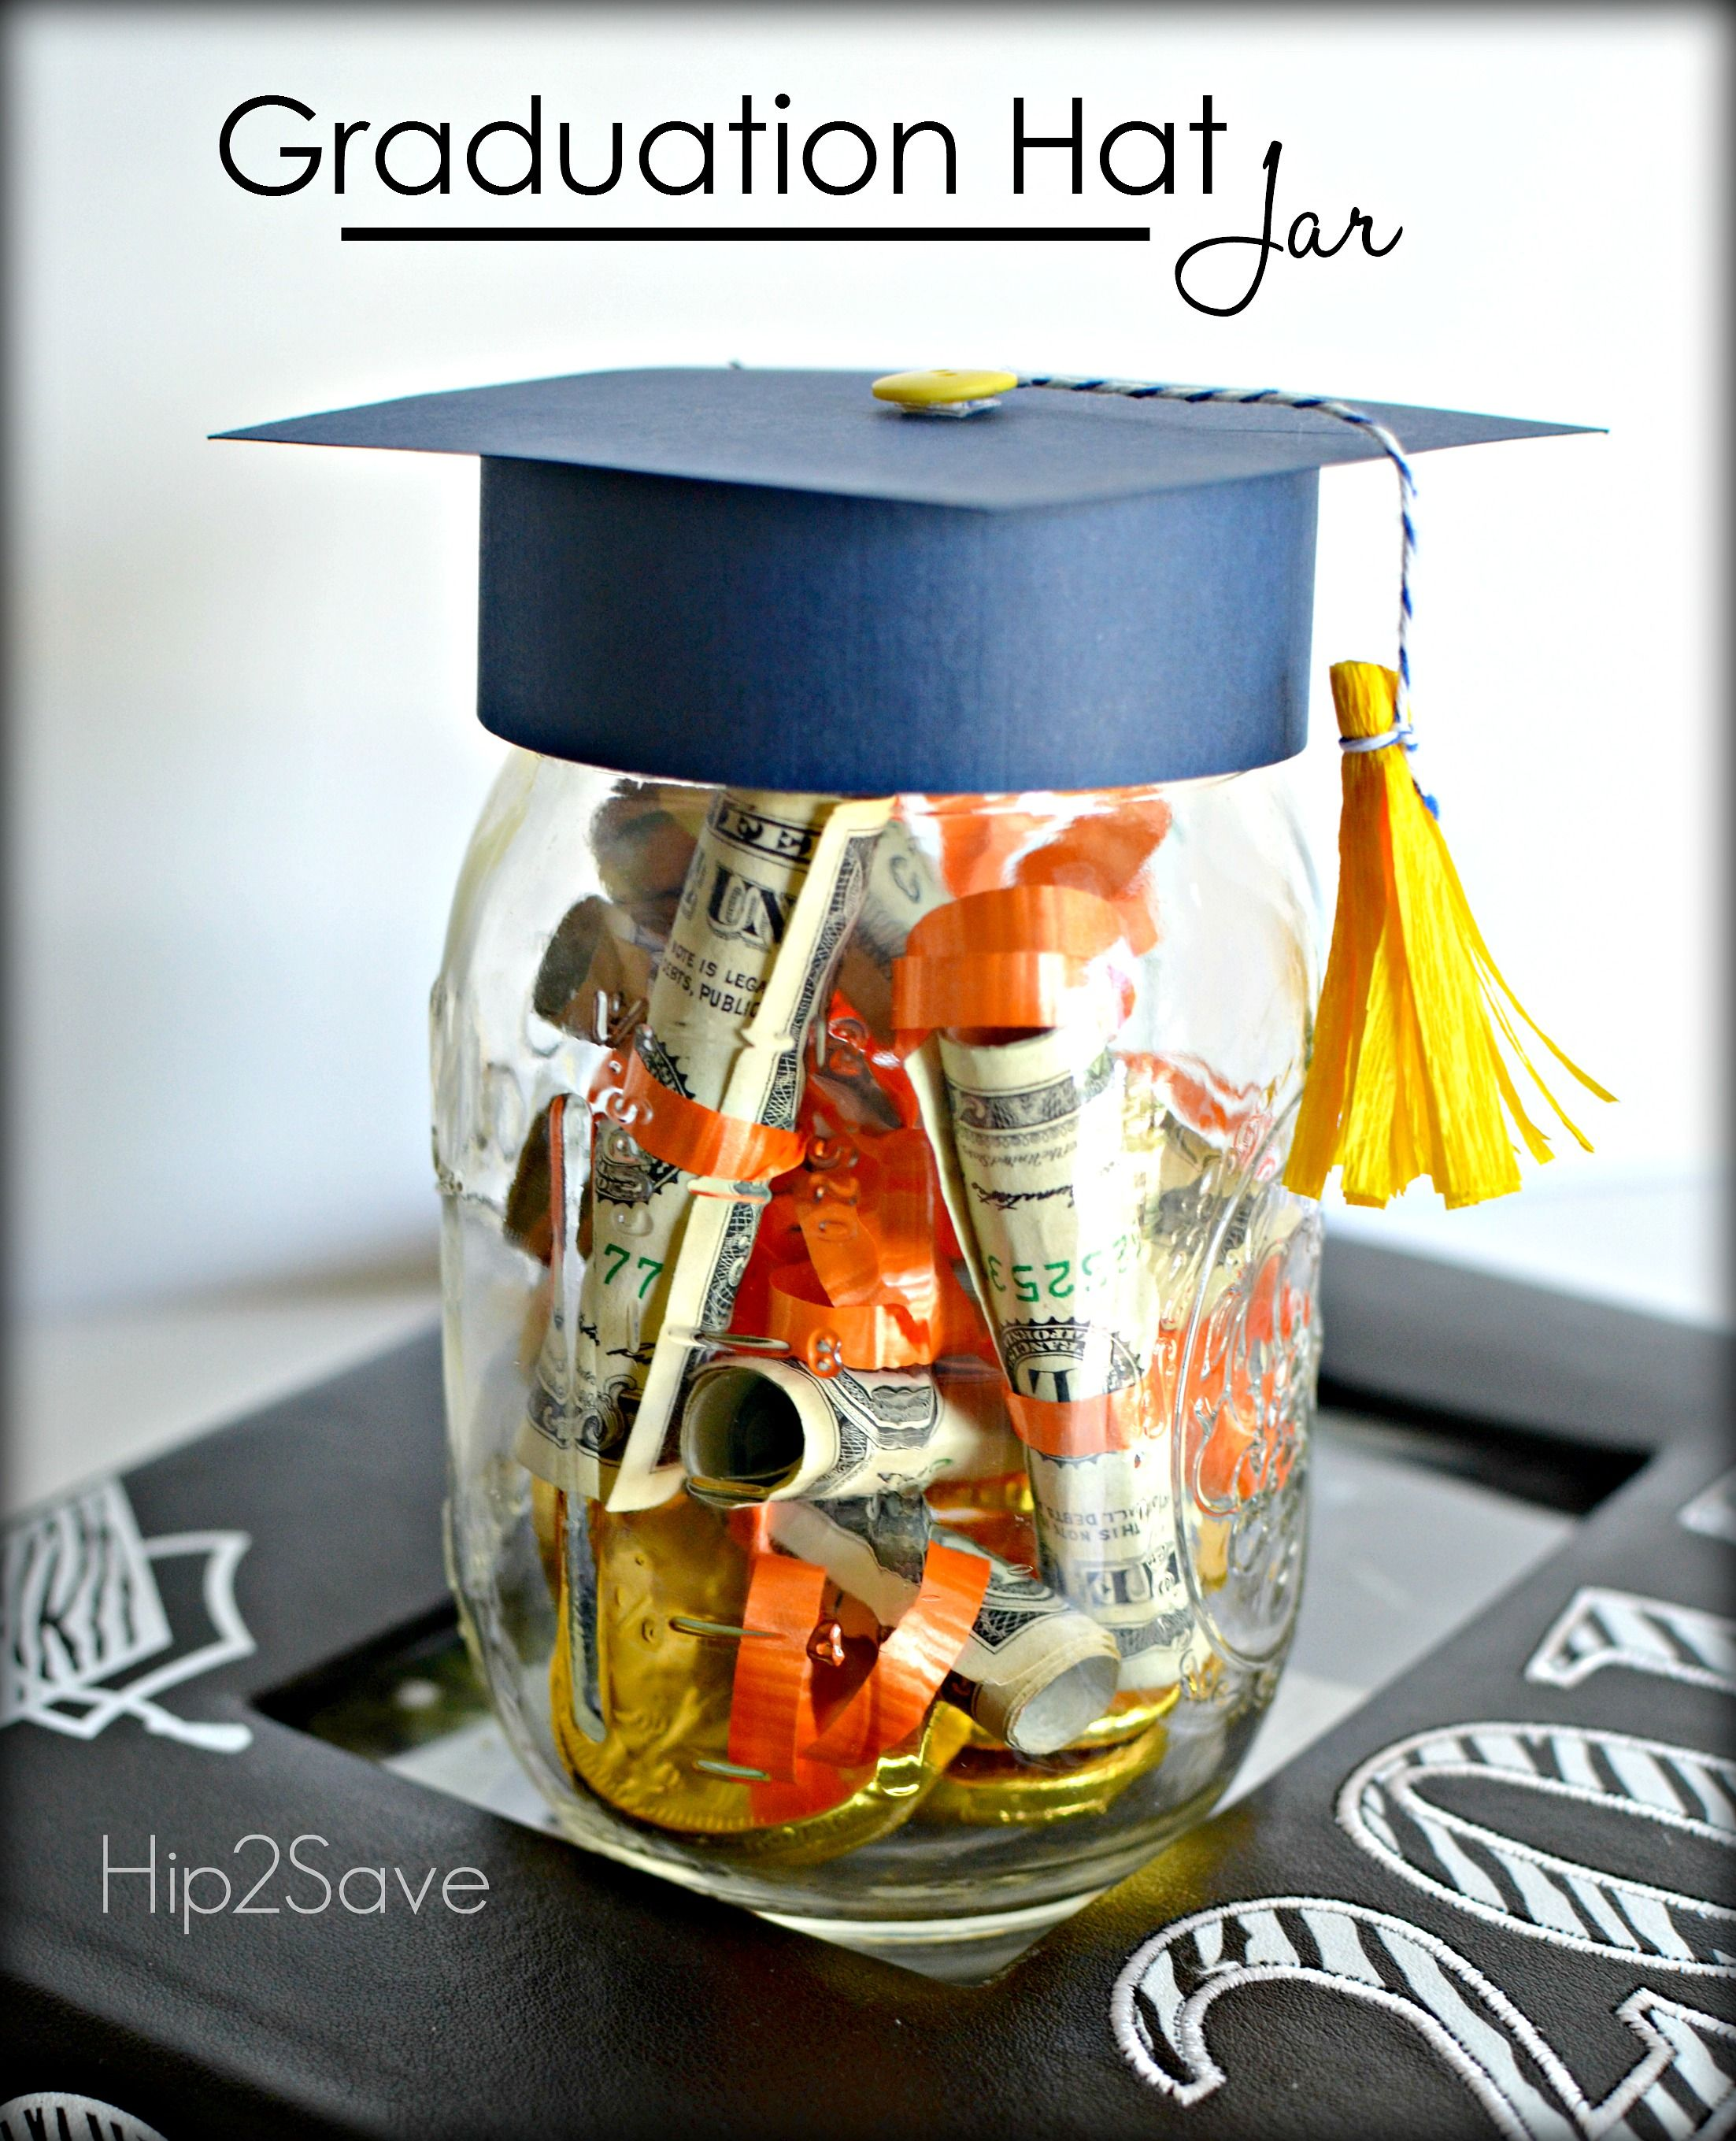 Graduation Hat Jar Graduation Gift Idea Diy Graduation Gifts Graduation Gifts Graduation Mason Jars